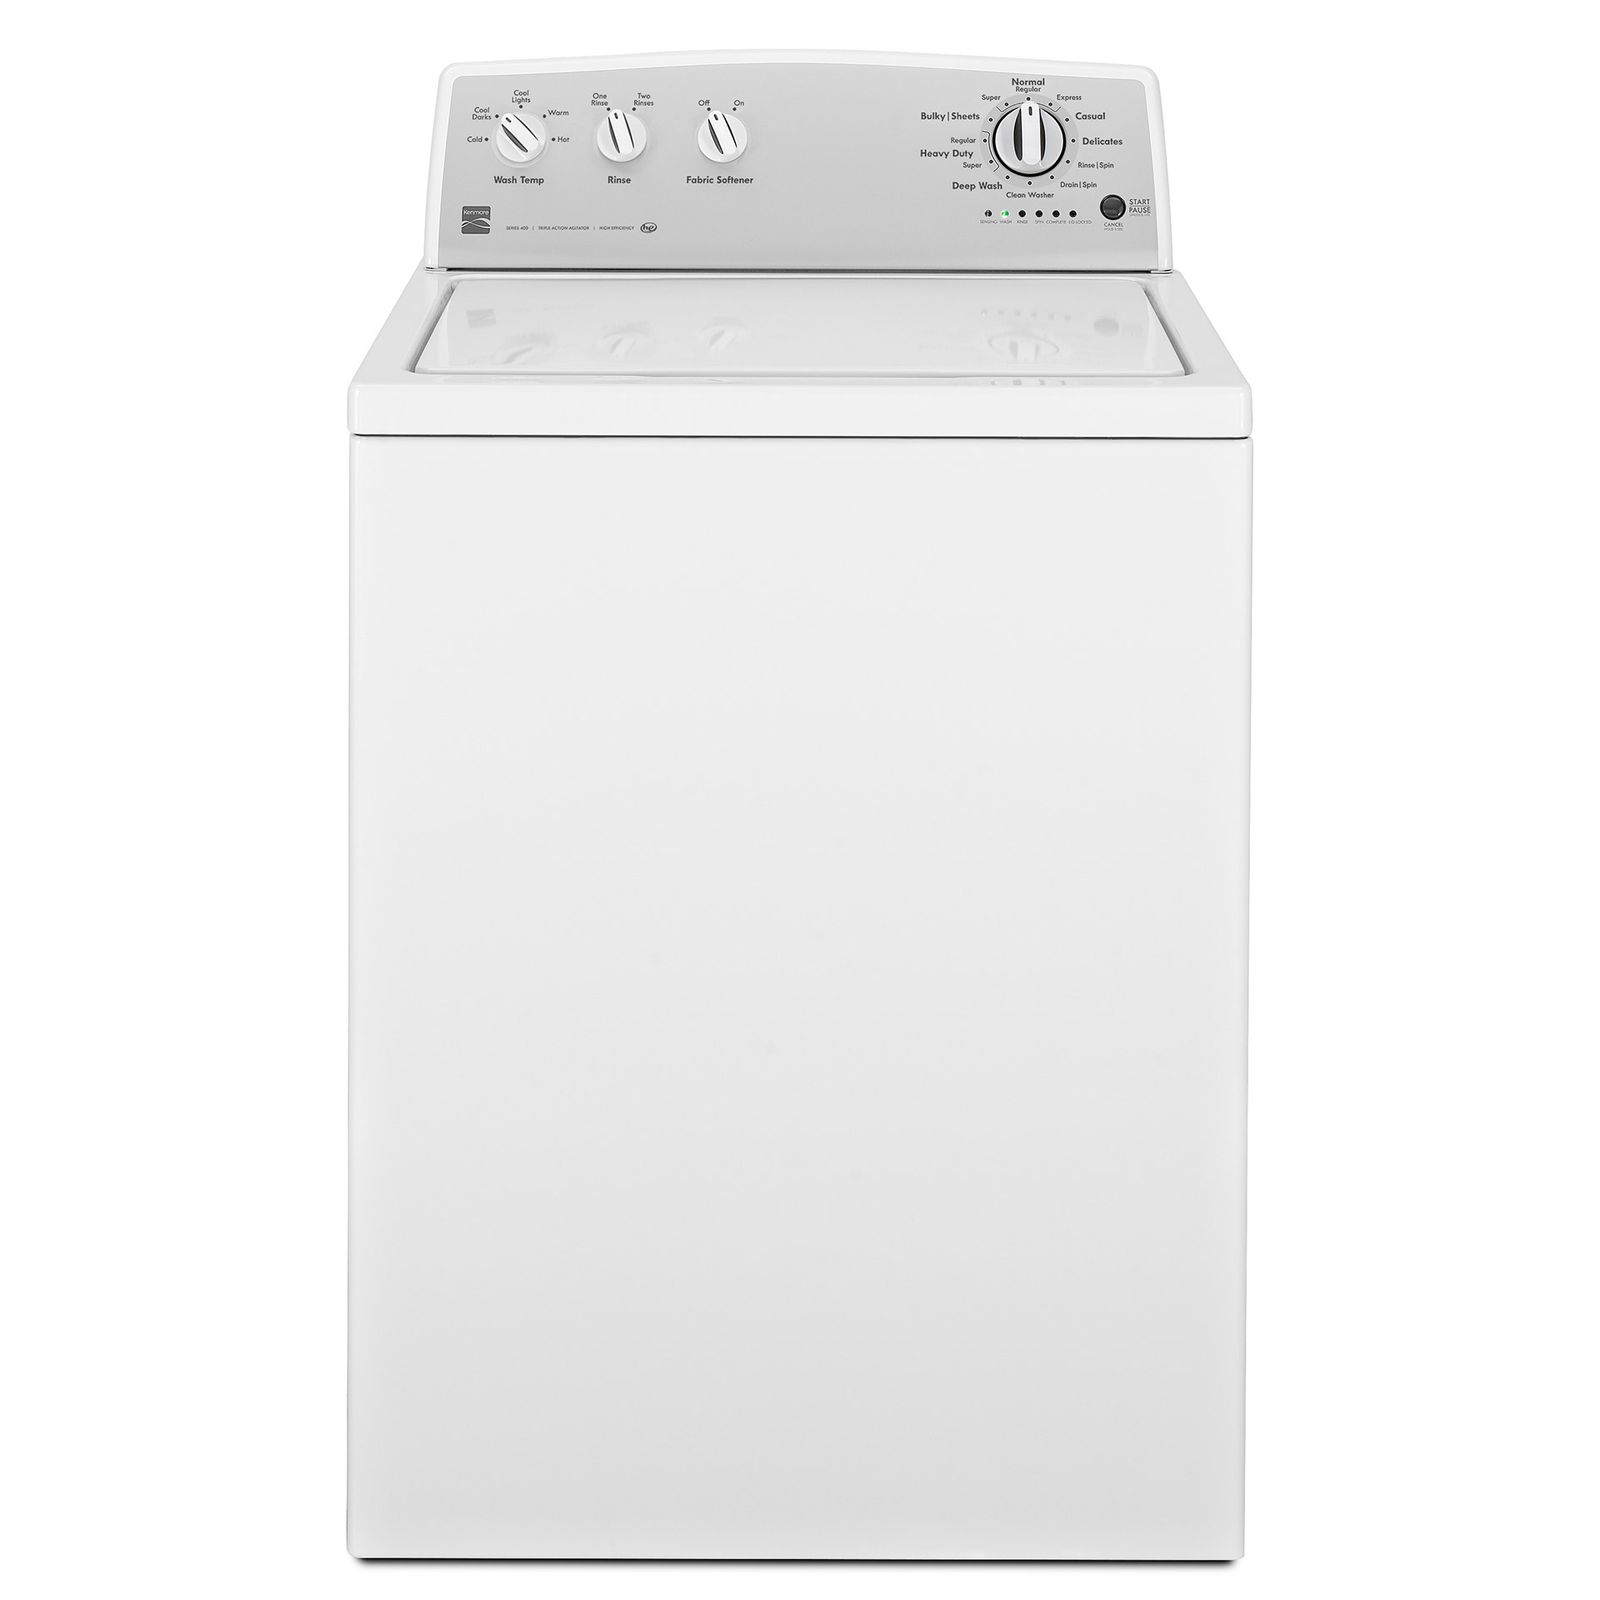 Kenmore 3 6 Cu Ft Top Load Washer With Deep Wash Cycle